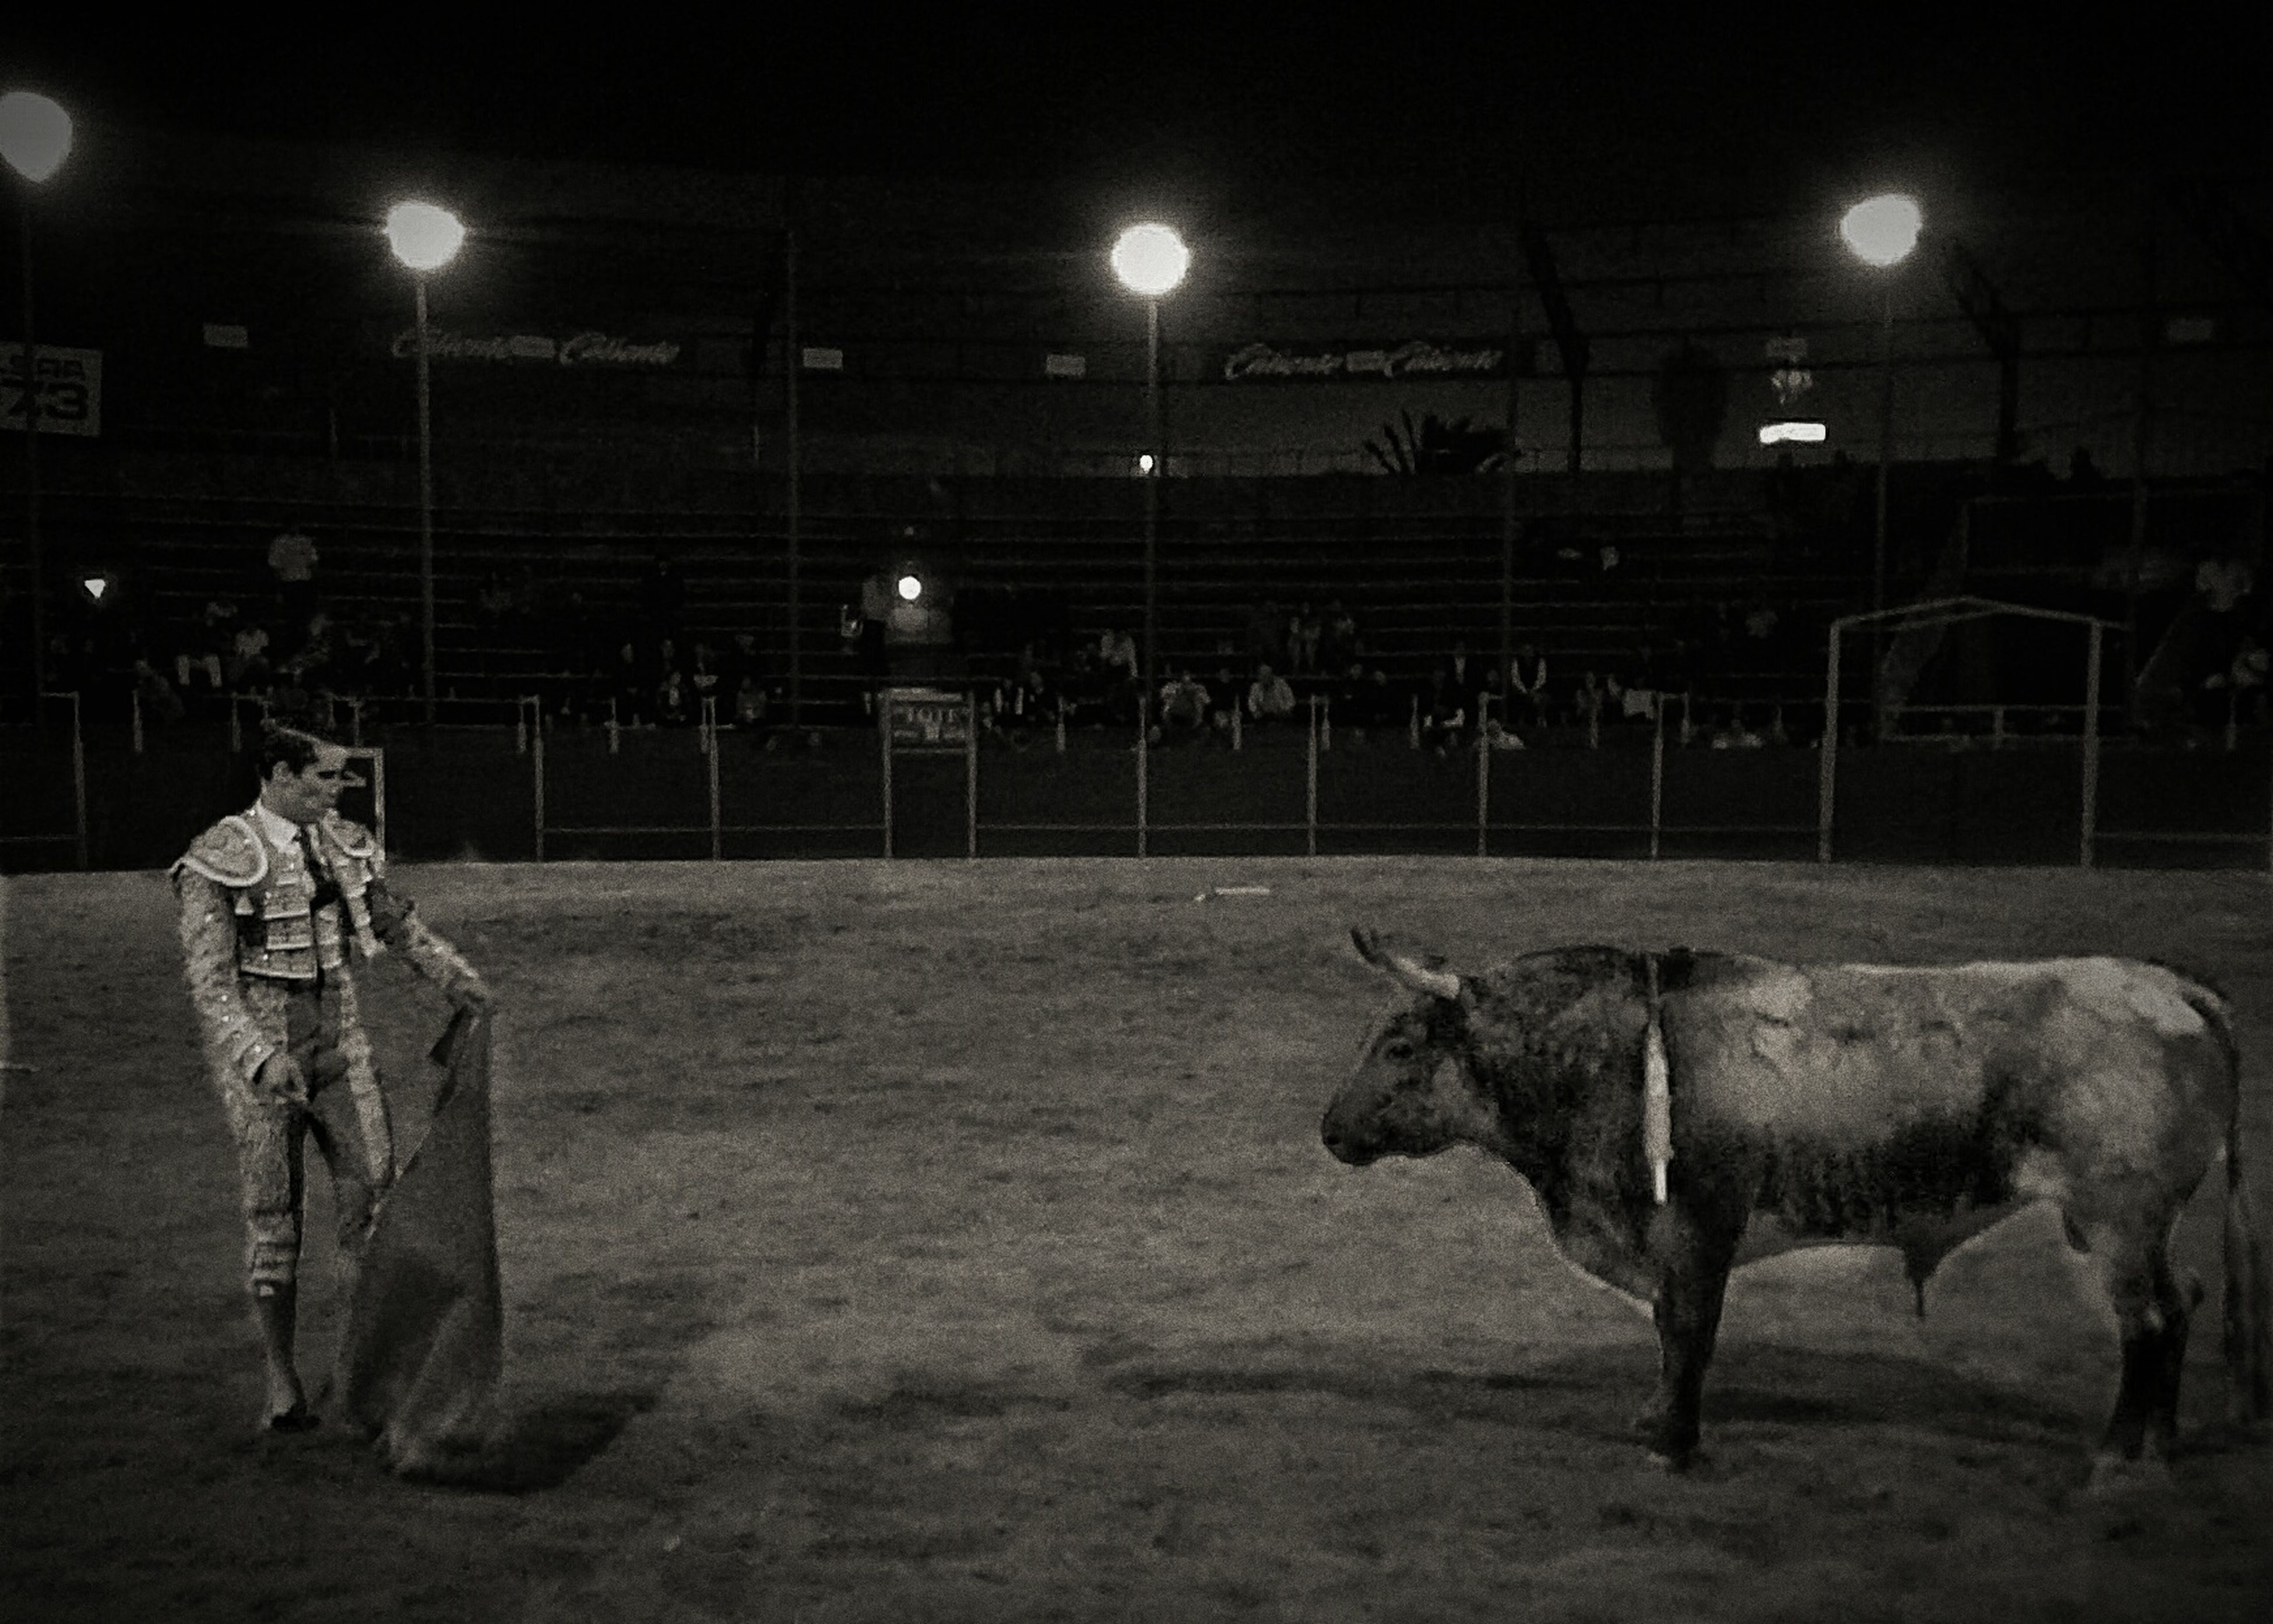 night, mammal, illuminated, livestock, cow, cattle, domestic animals, animal themes, outdoors, real people, nature